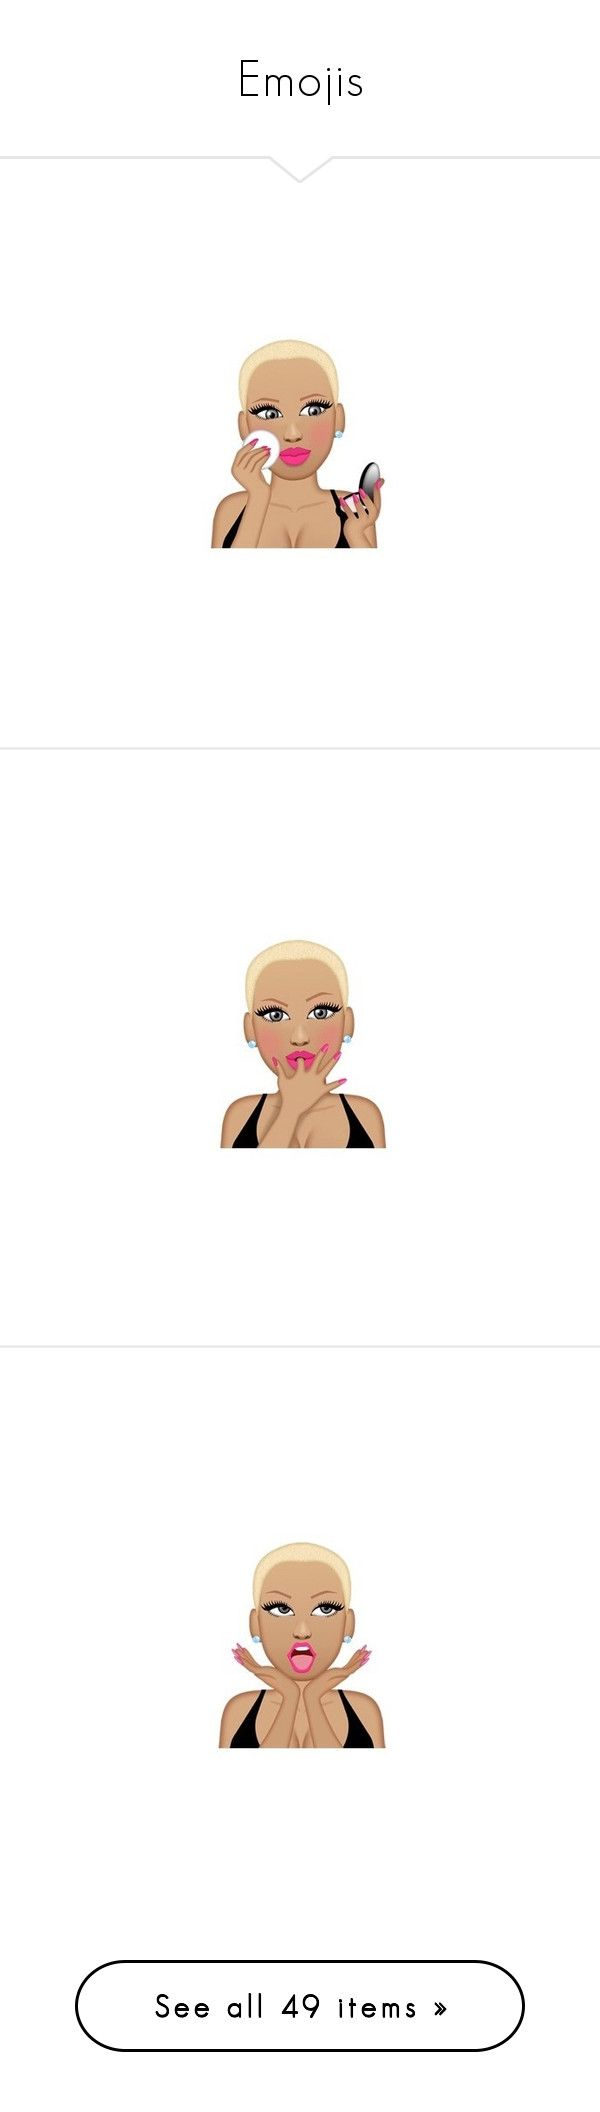 """""""Emojis"""" by duhhqueen ❤ liked on Polyvore featuring muvamoji, emoji, extras, pictures, text, filler, phrase, quotes, saying and emojis"""